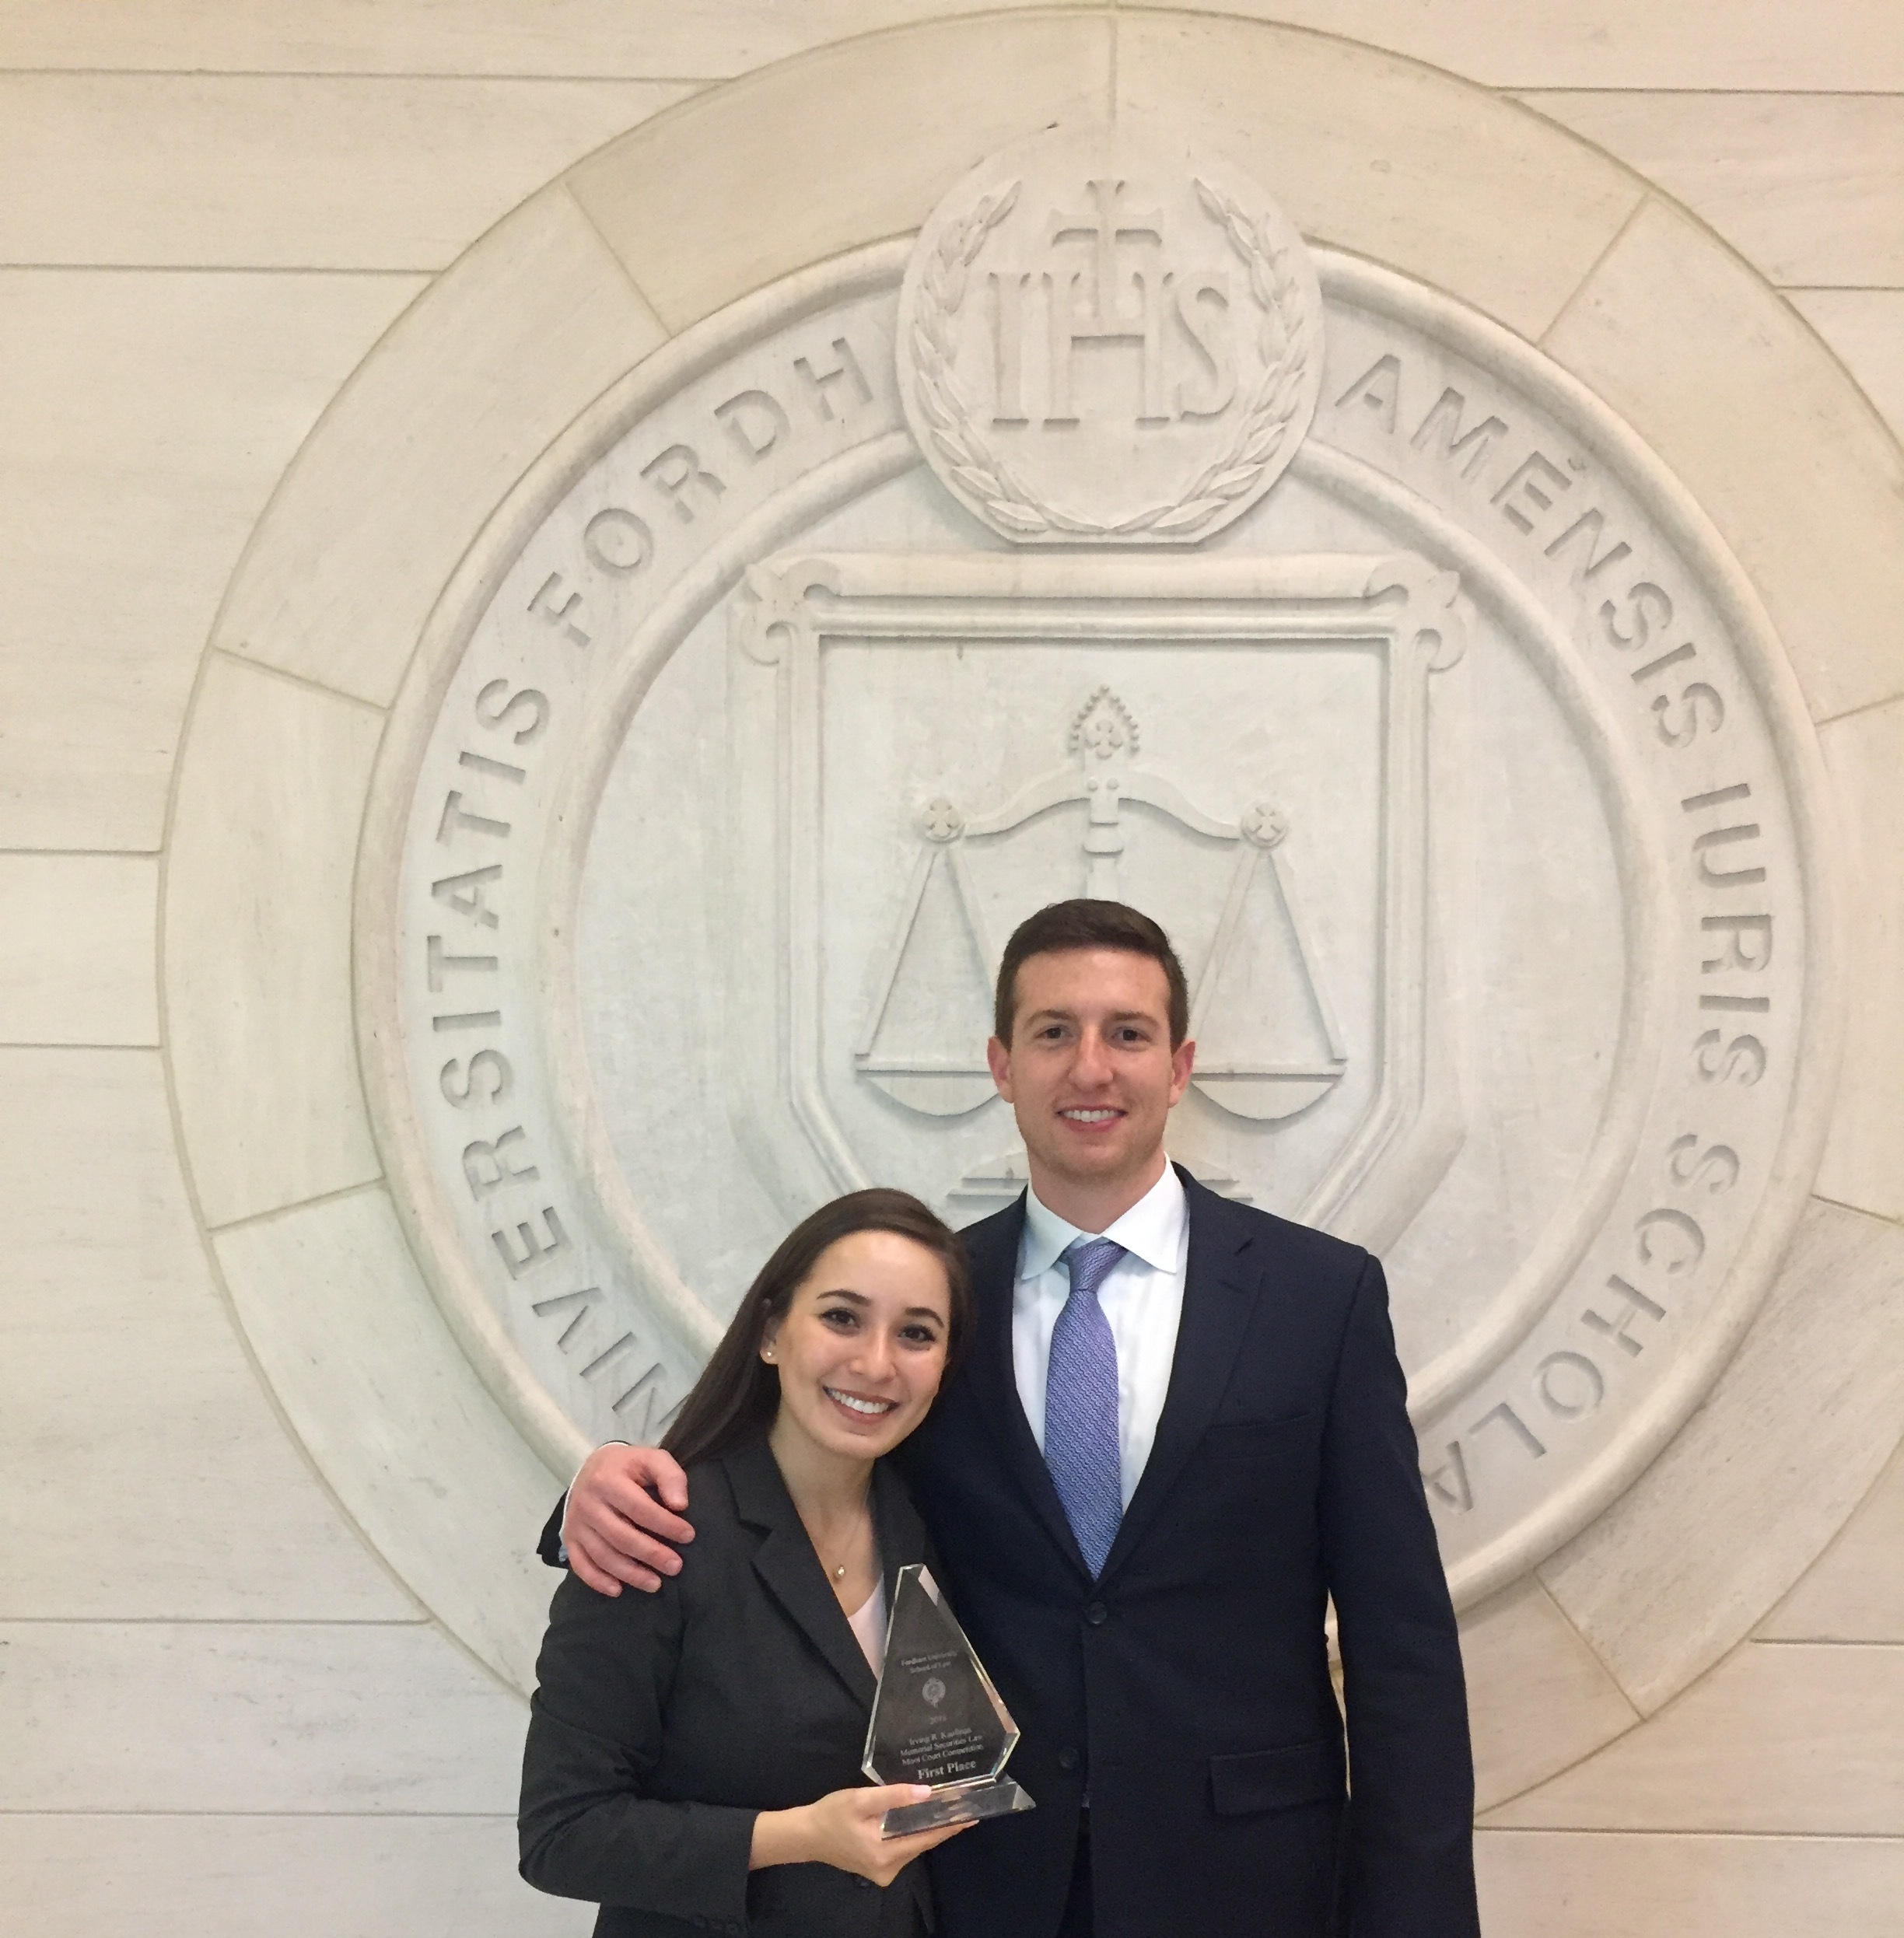 Trina Rizzo '19 and Phil Doerr '20 argued before Associate Supreme Court Justice Samuel Alito to claim first place at the extramural moot court team's final tournament of 2018.